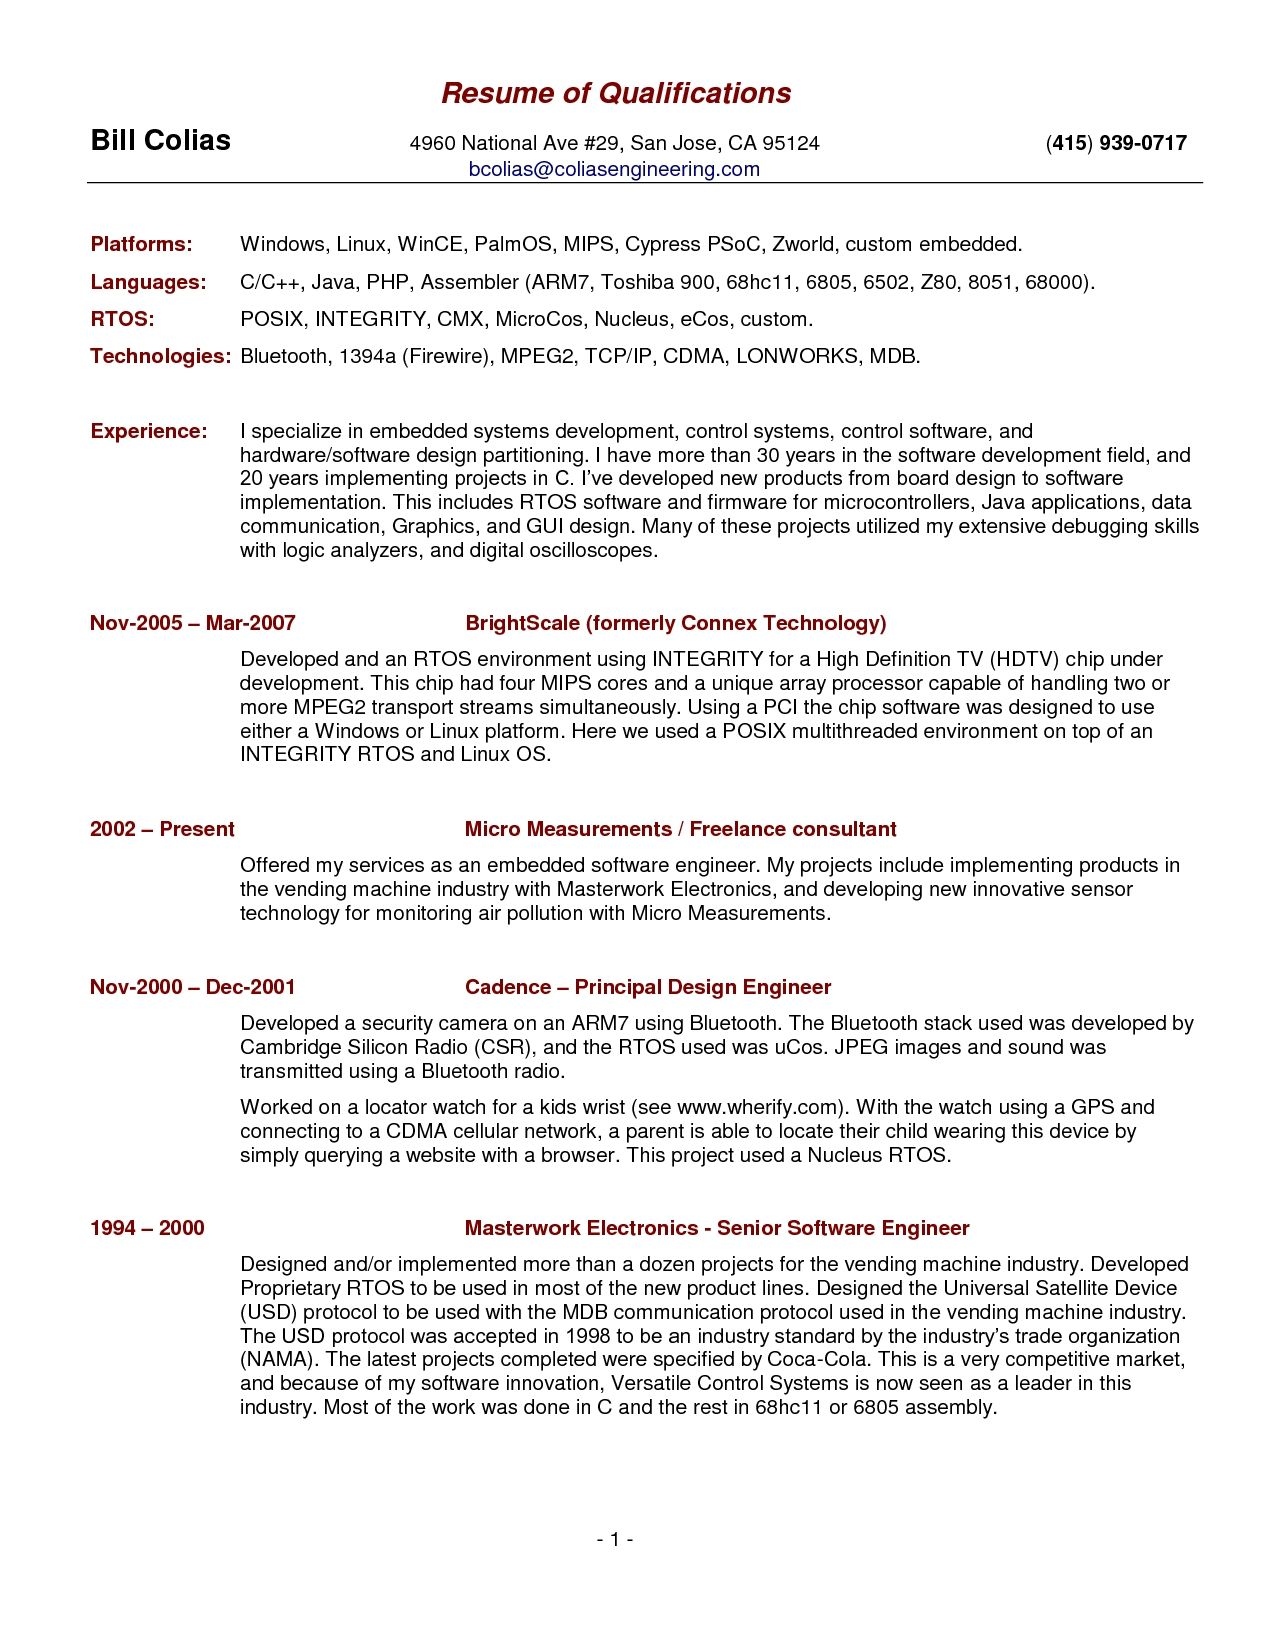 Free Resume Template Summary Qualifications 3 Free Resume